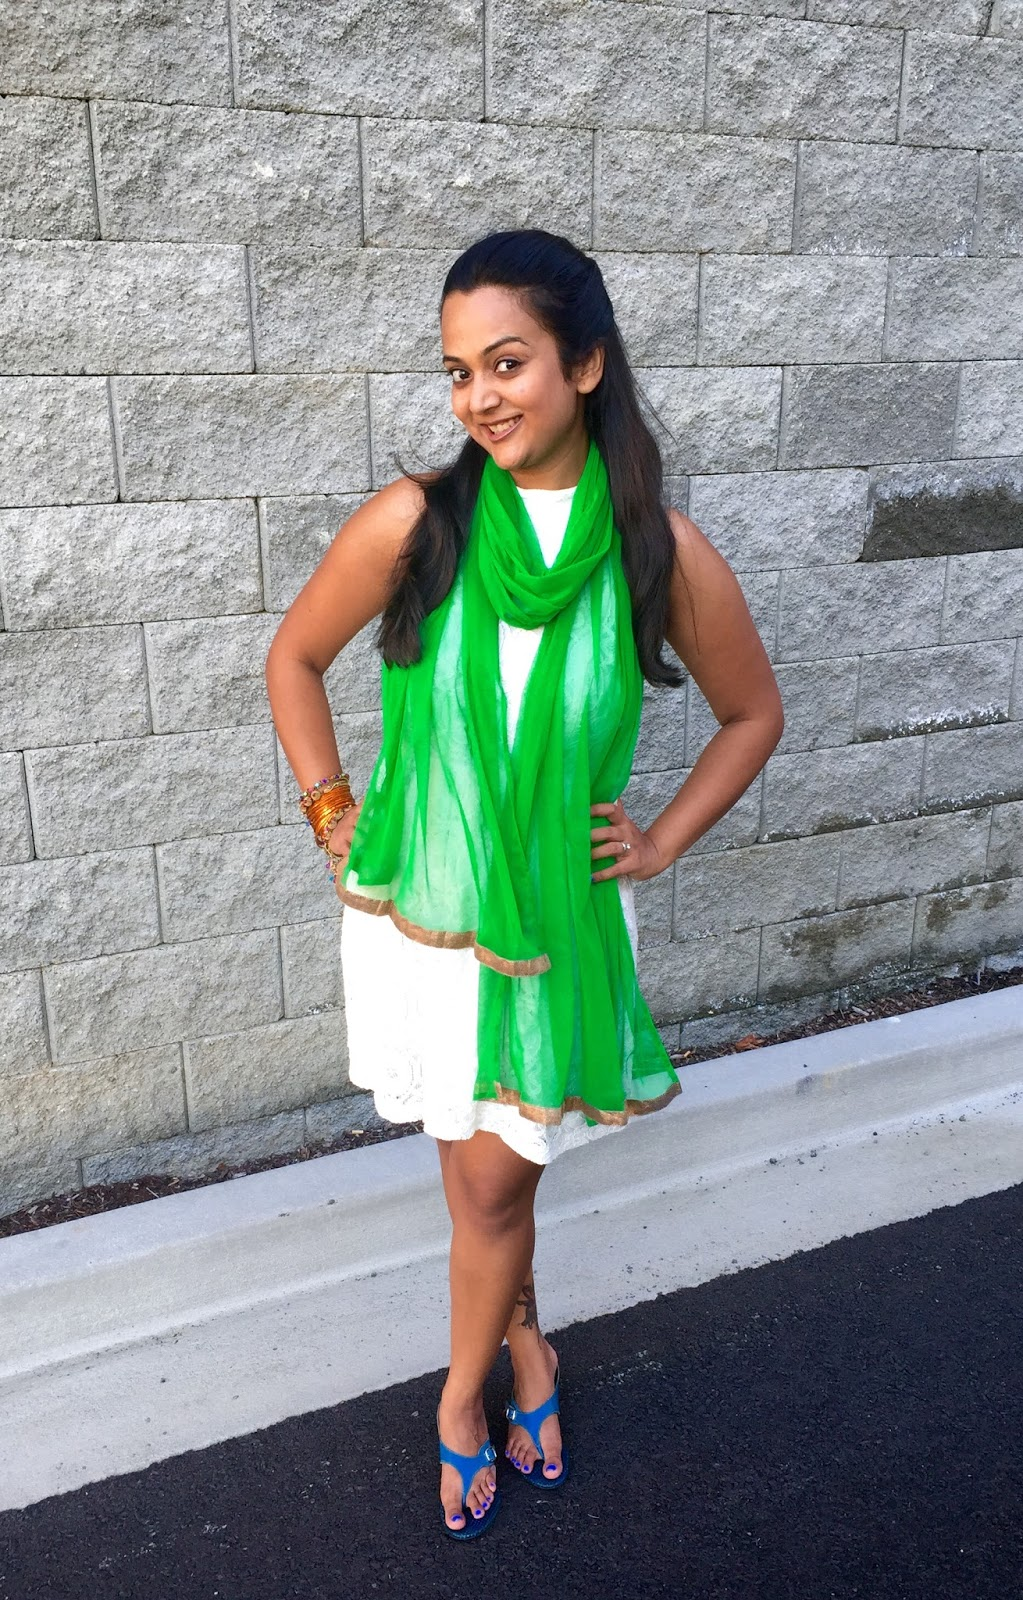 Indian Independence Day Outfit ideas, Tricolor Outfits, Indian Flag Outfits, Saffron, green, Indo Western Look, Ananya in Tricolors